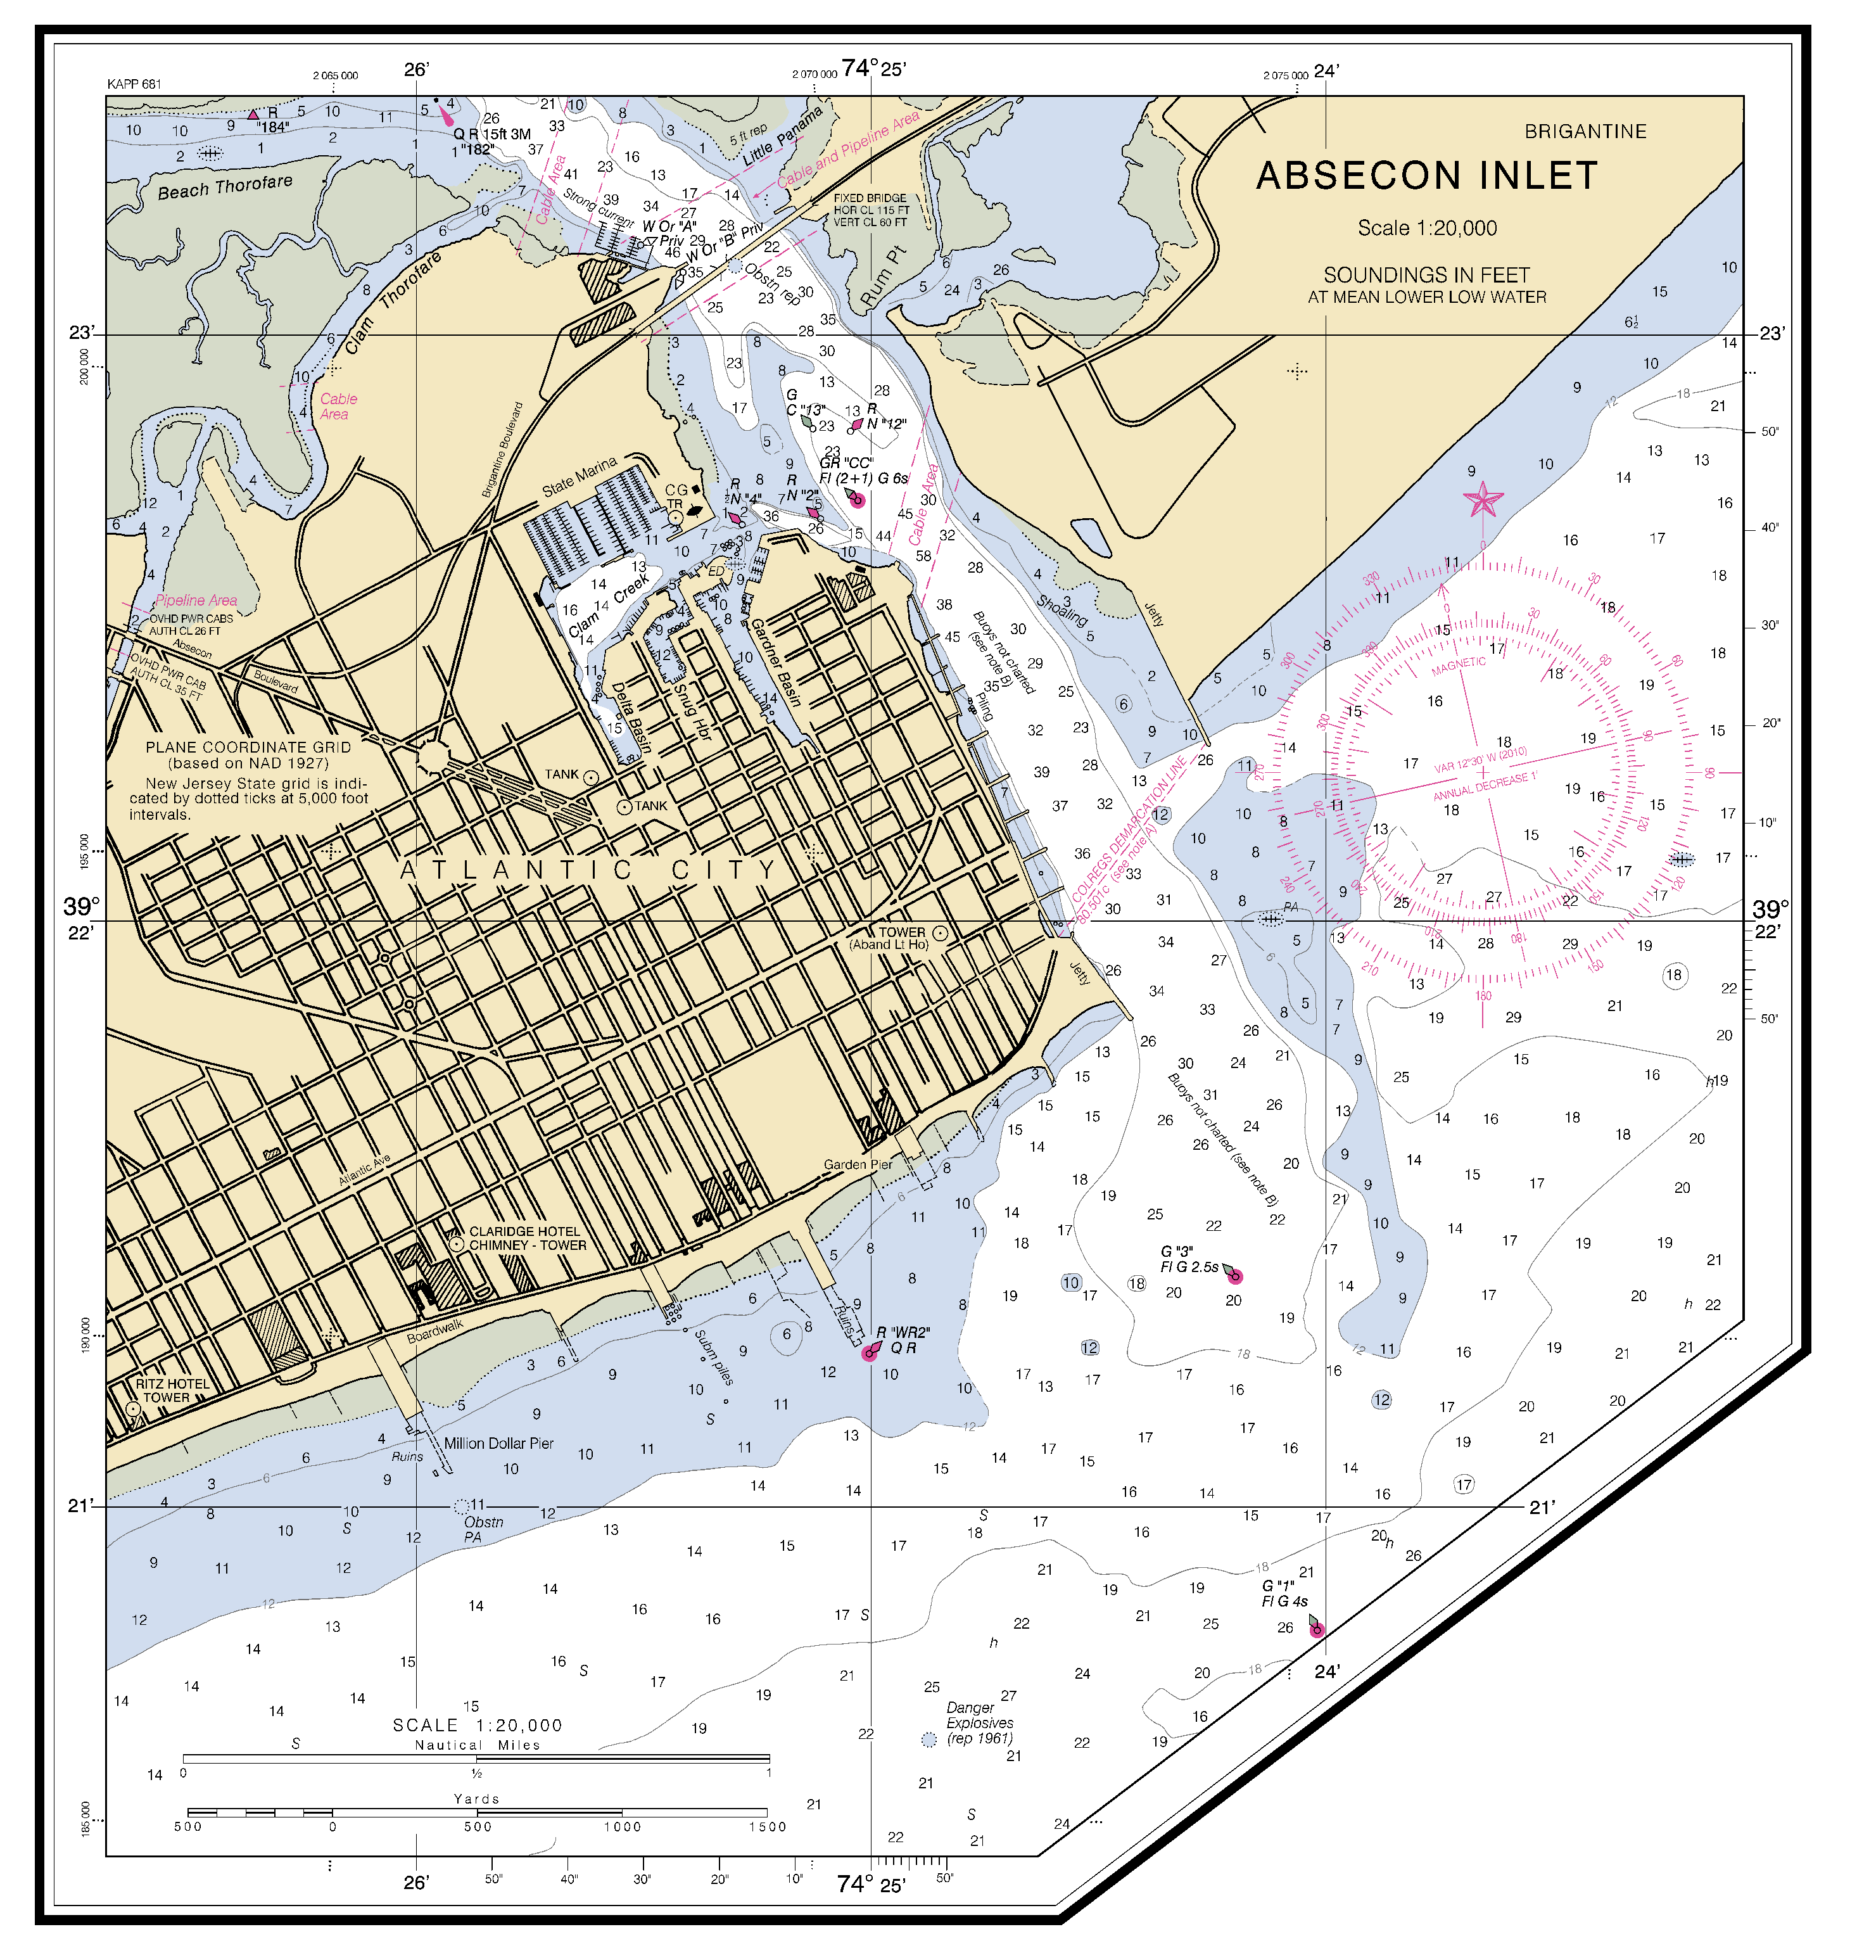 Absecon inlet nautical chart charts maps click on the map to download full size nvjuhfo Choice Image